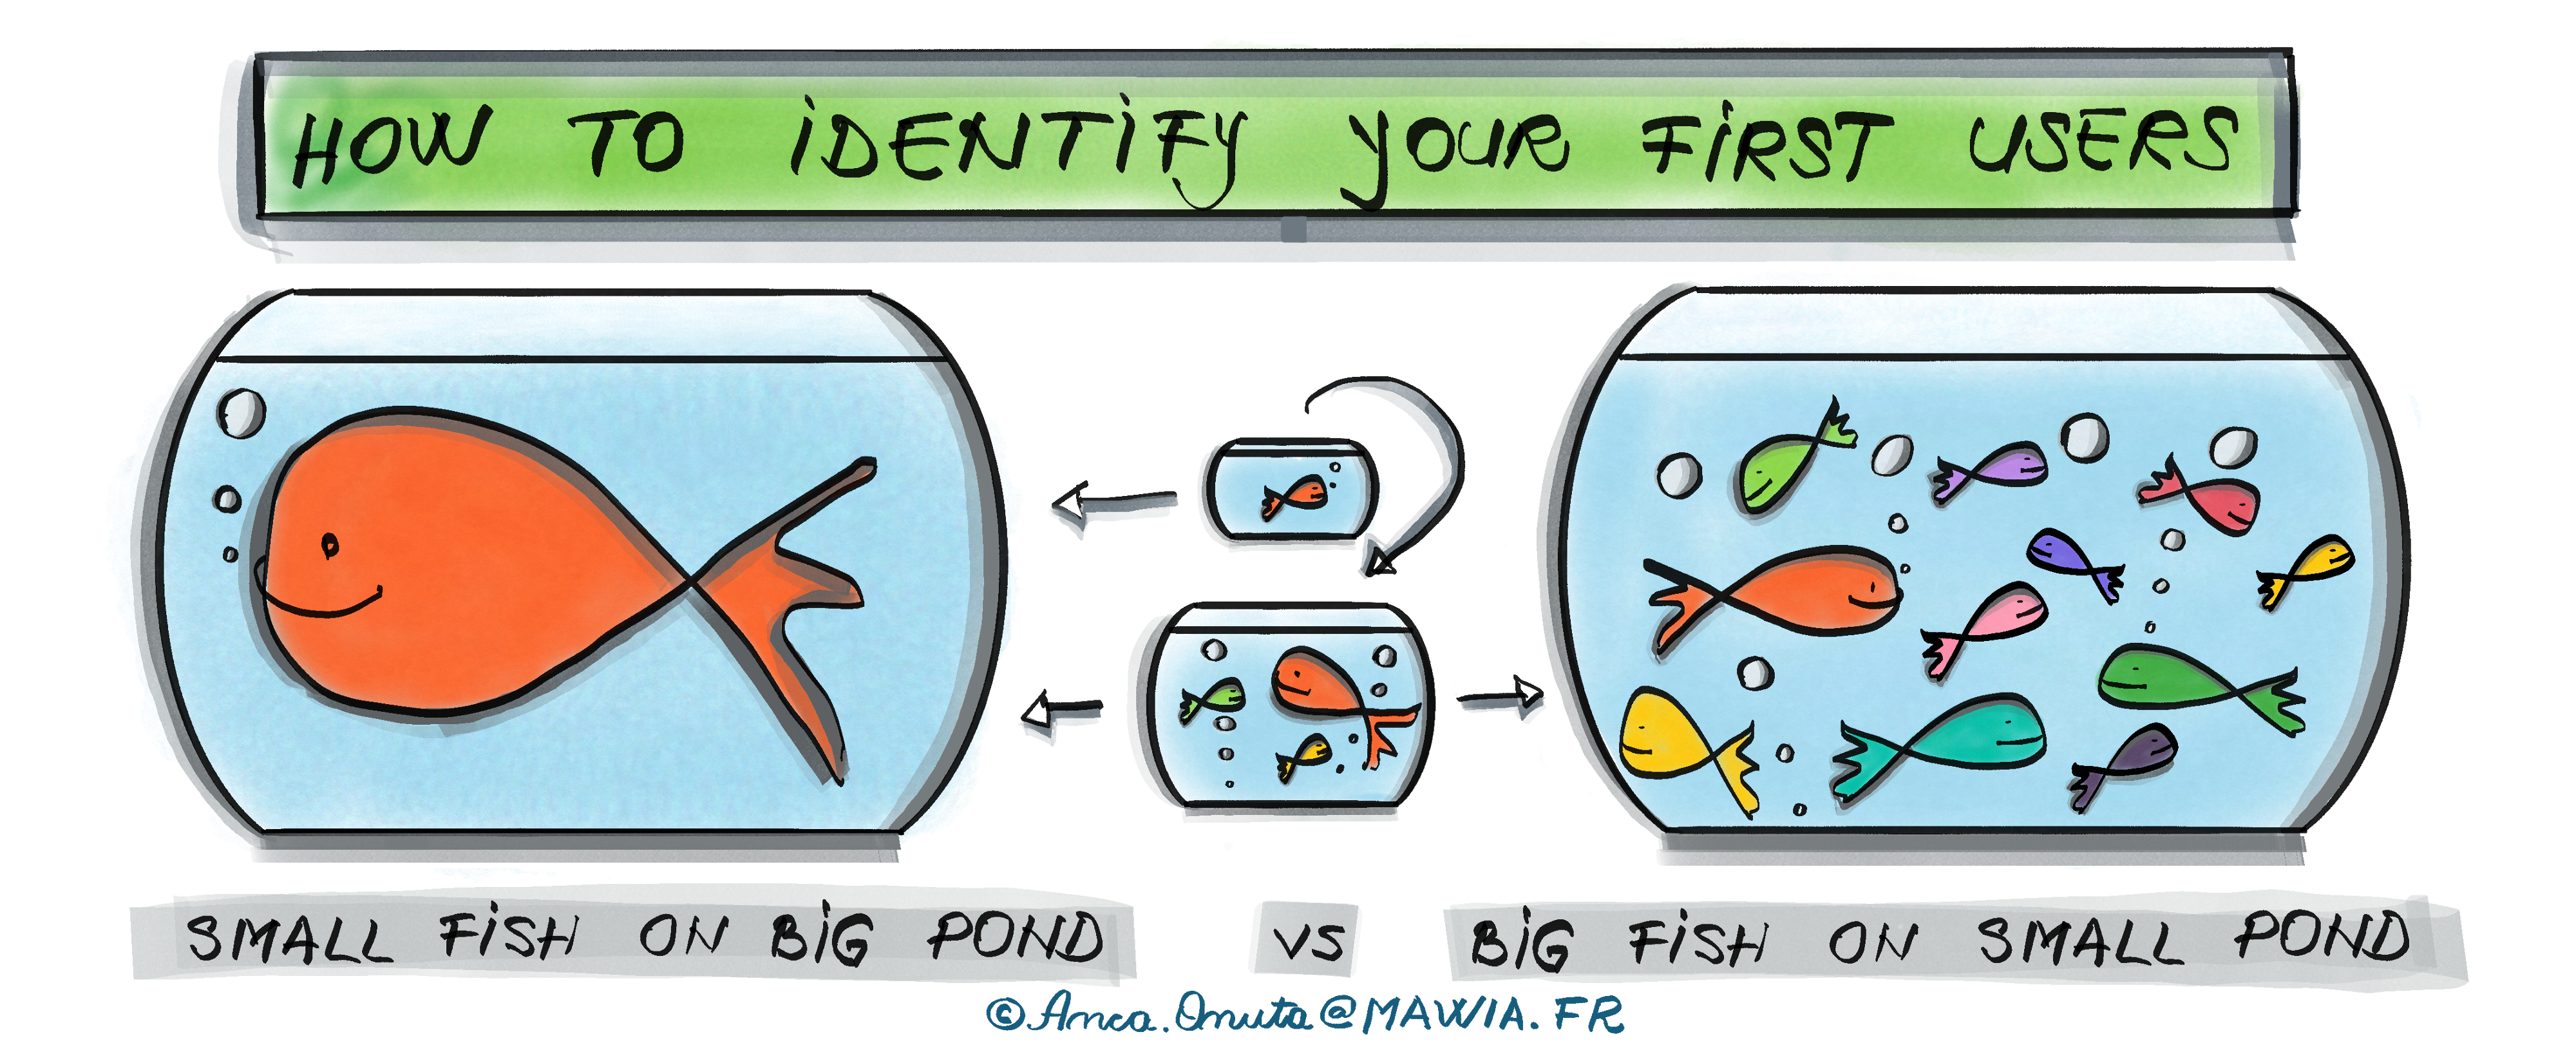 Agile product strategy: small fish in big pond vs big fish in small pond.